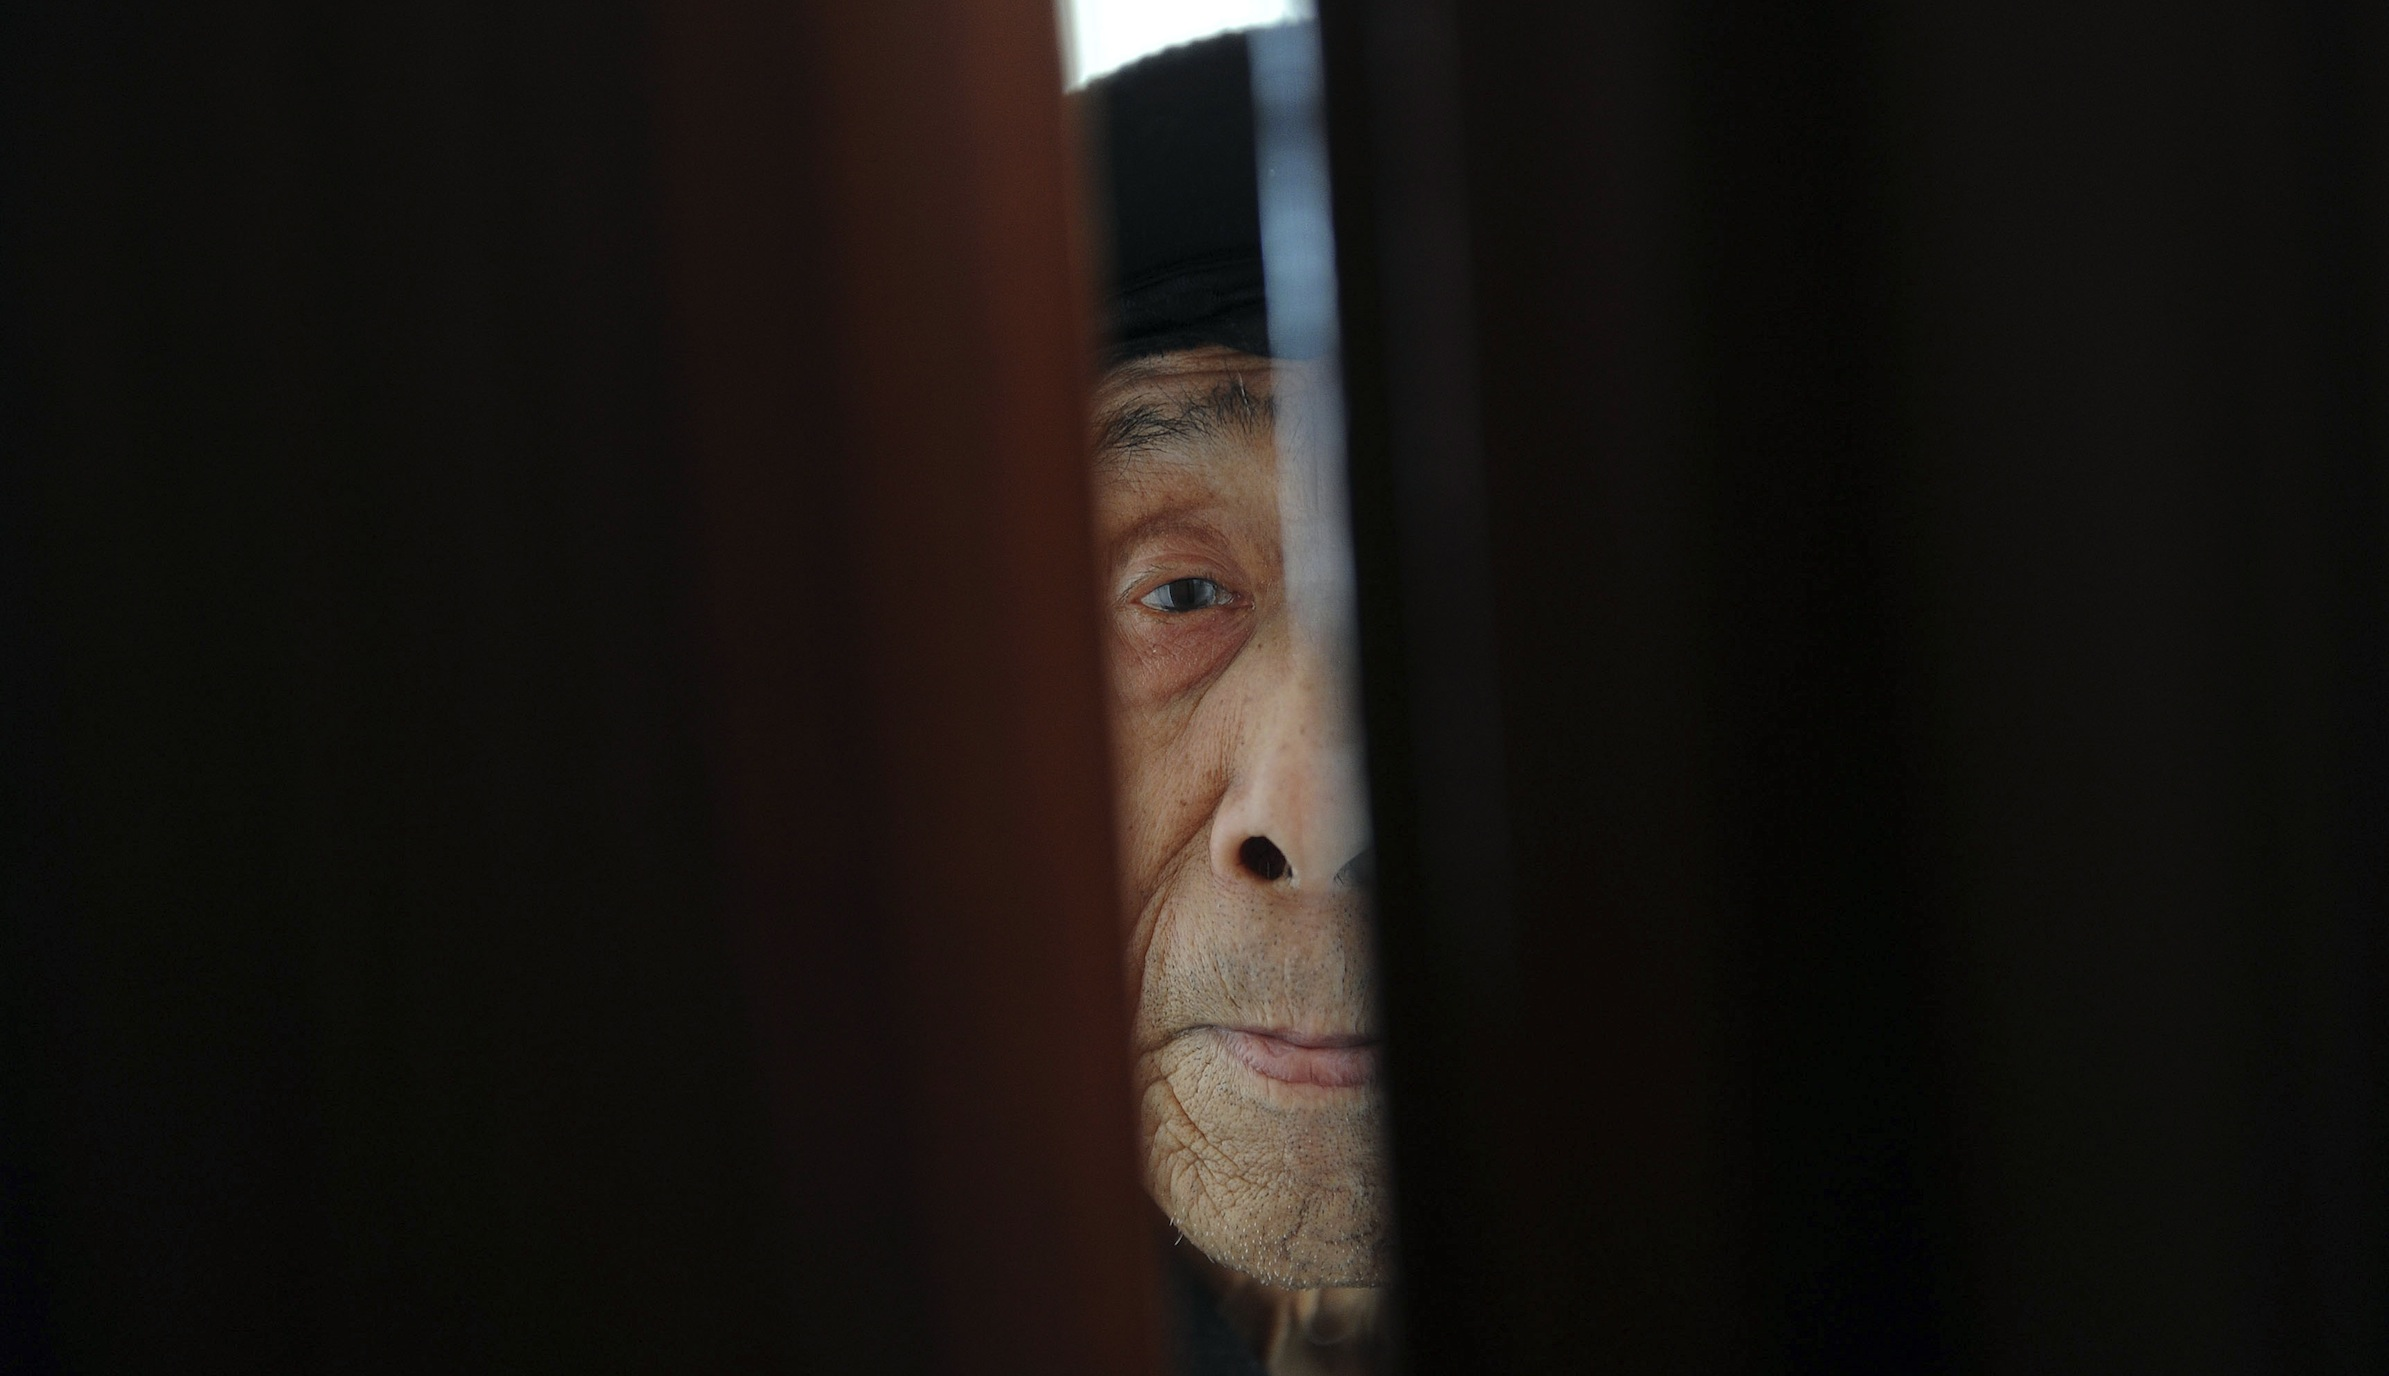 An elderly man looks out from a door at a nursing home in Hefei, Anhui province March 20, 2012. China's efforts to overhaul the world's biggest healthcare system and the increased medical care demanded by a more prosperous and aging nation will push costs higher, according to Health Minister Chen Zhu. Picture taken March 20, 2012. REUTERS/Stringer (CHINA - Tags: POLITICS SOCIETY HEALTH) - RTR2ZNCK